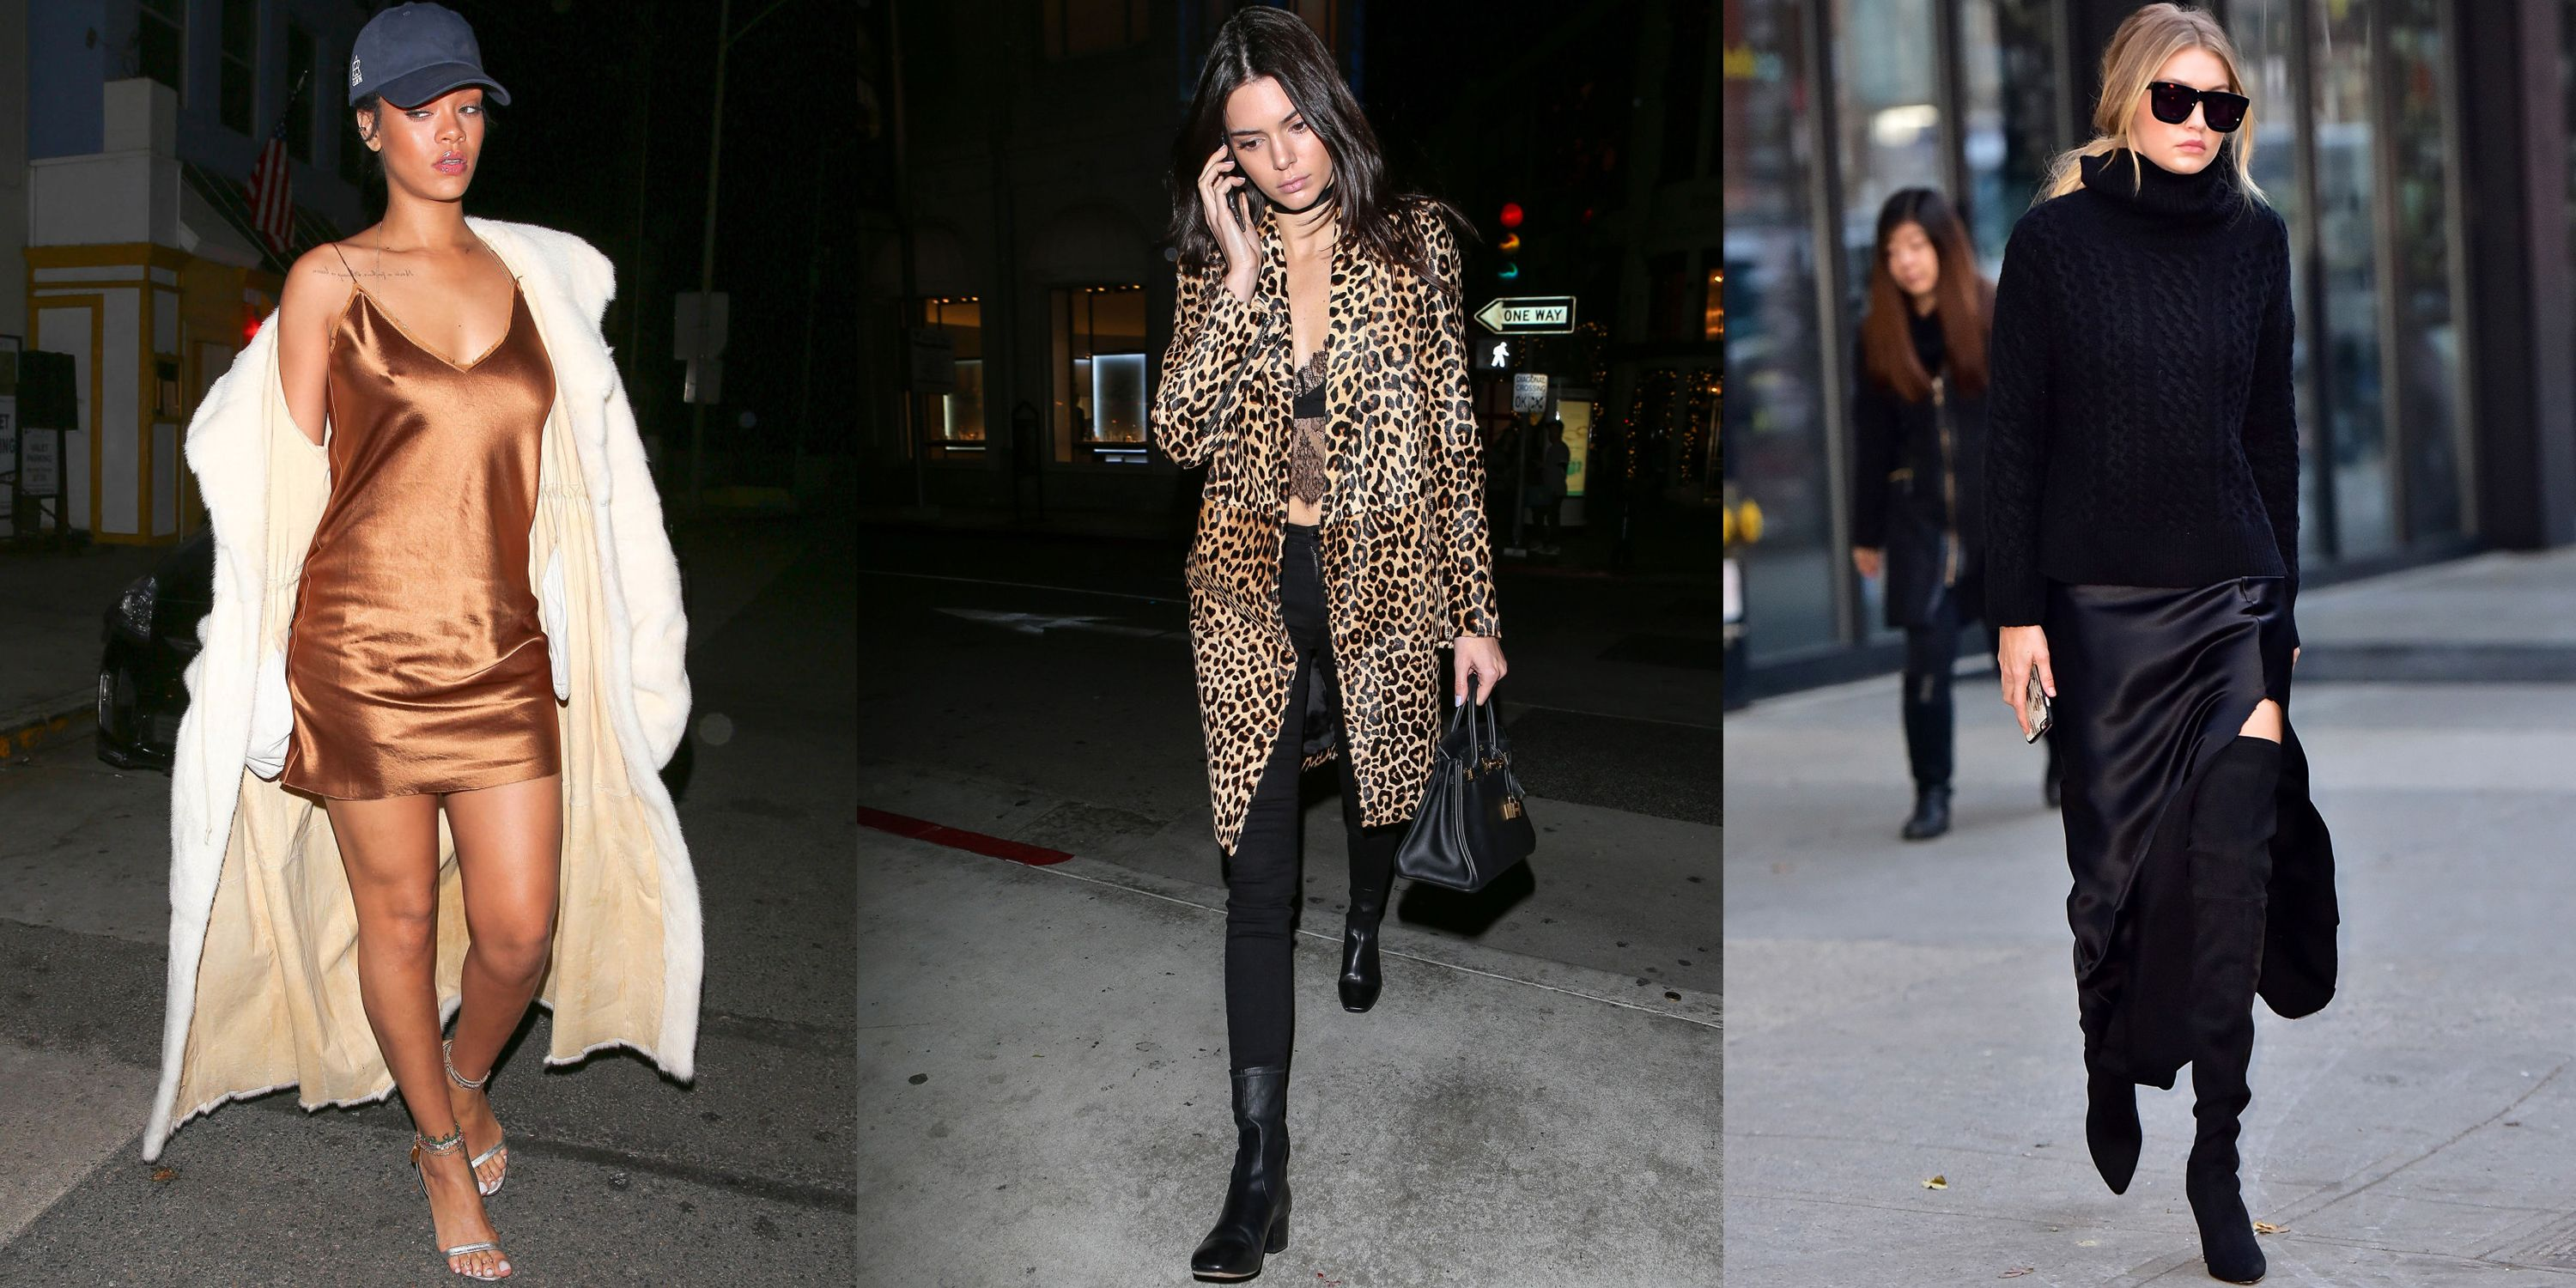 <p>Give your lingerie extra playing time this season à la fashion's favorite style stars—Rihanna, Kendall Jenner and Gigi Hadid. Pair silk pieces with wintry layers and chic extras to transform them from the boudoir to the streets.</p>